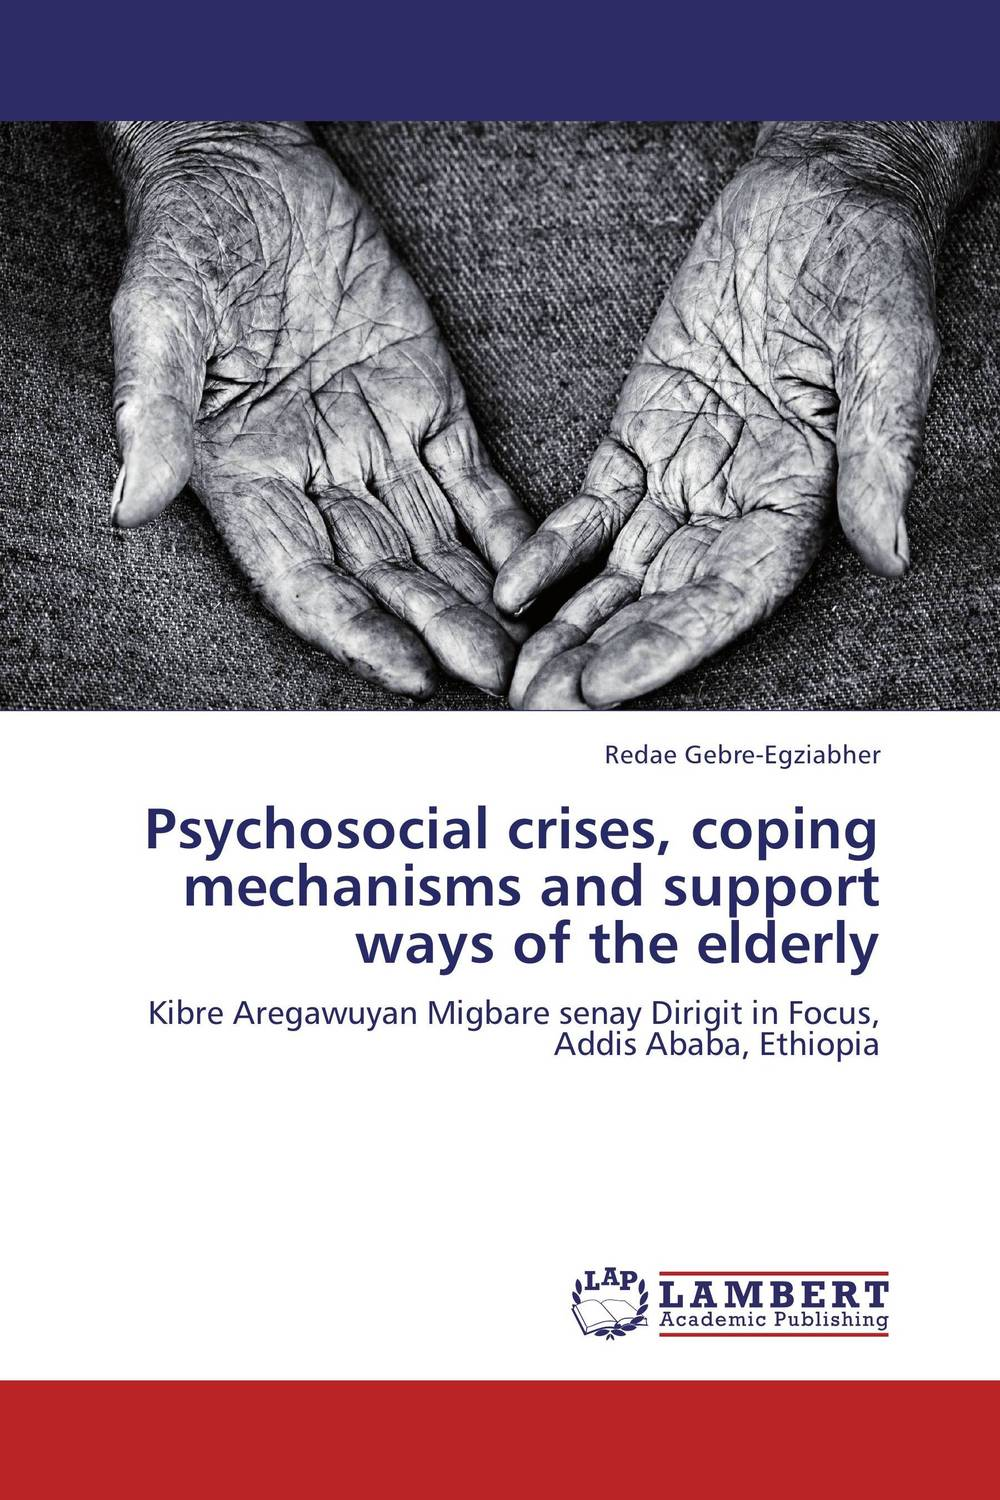 Psychosocial crises, coping mechanisms and support ways of the elderly scientific and mythological ways of knowing in anthropology